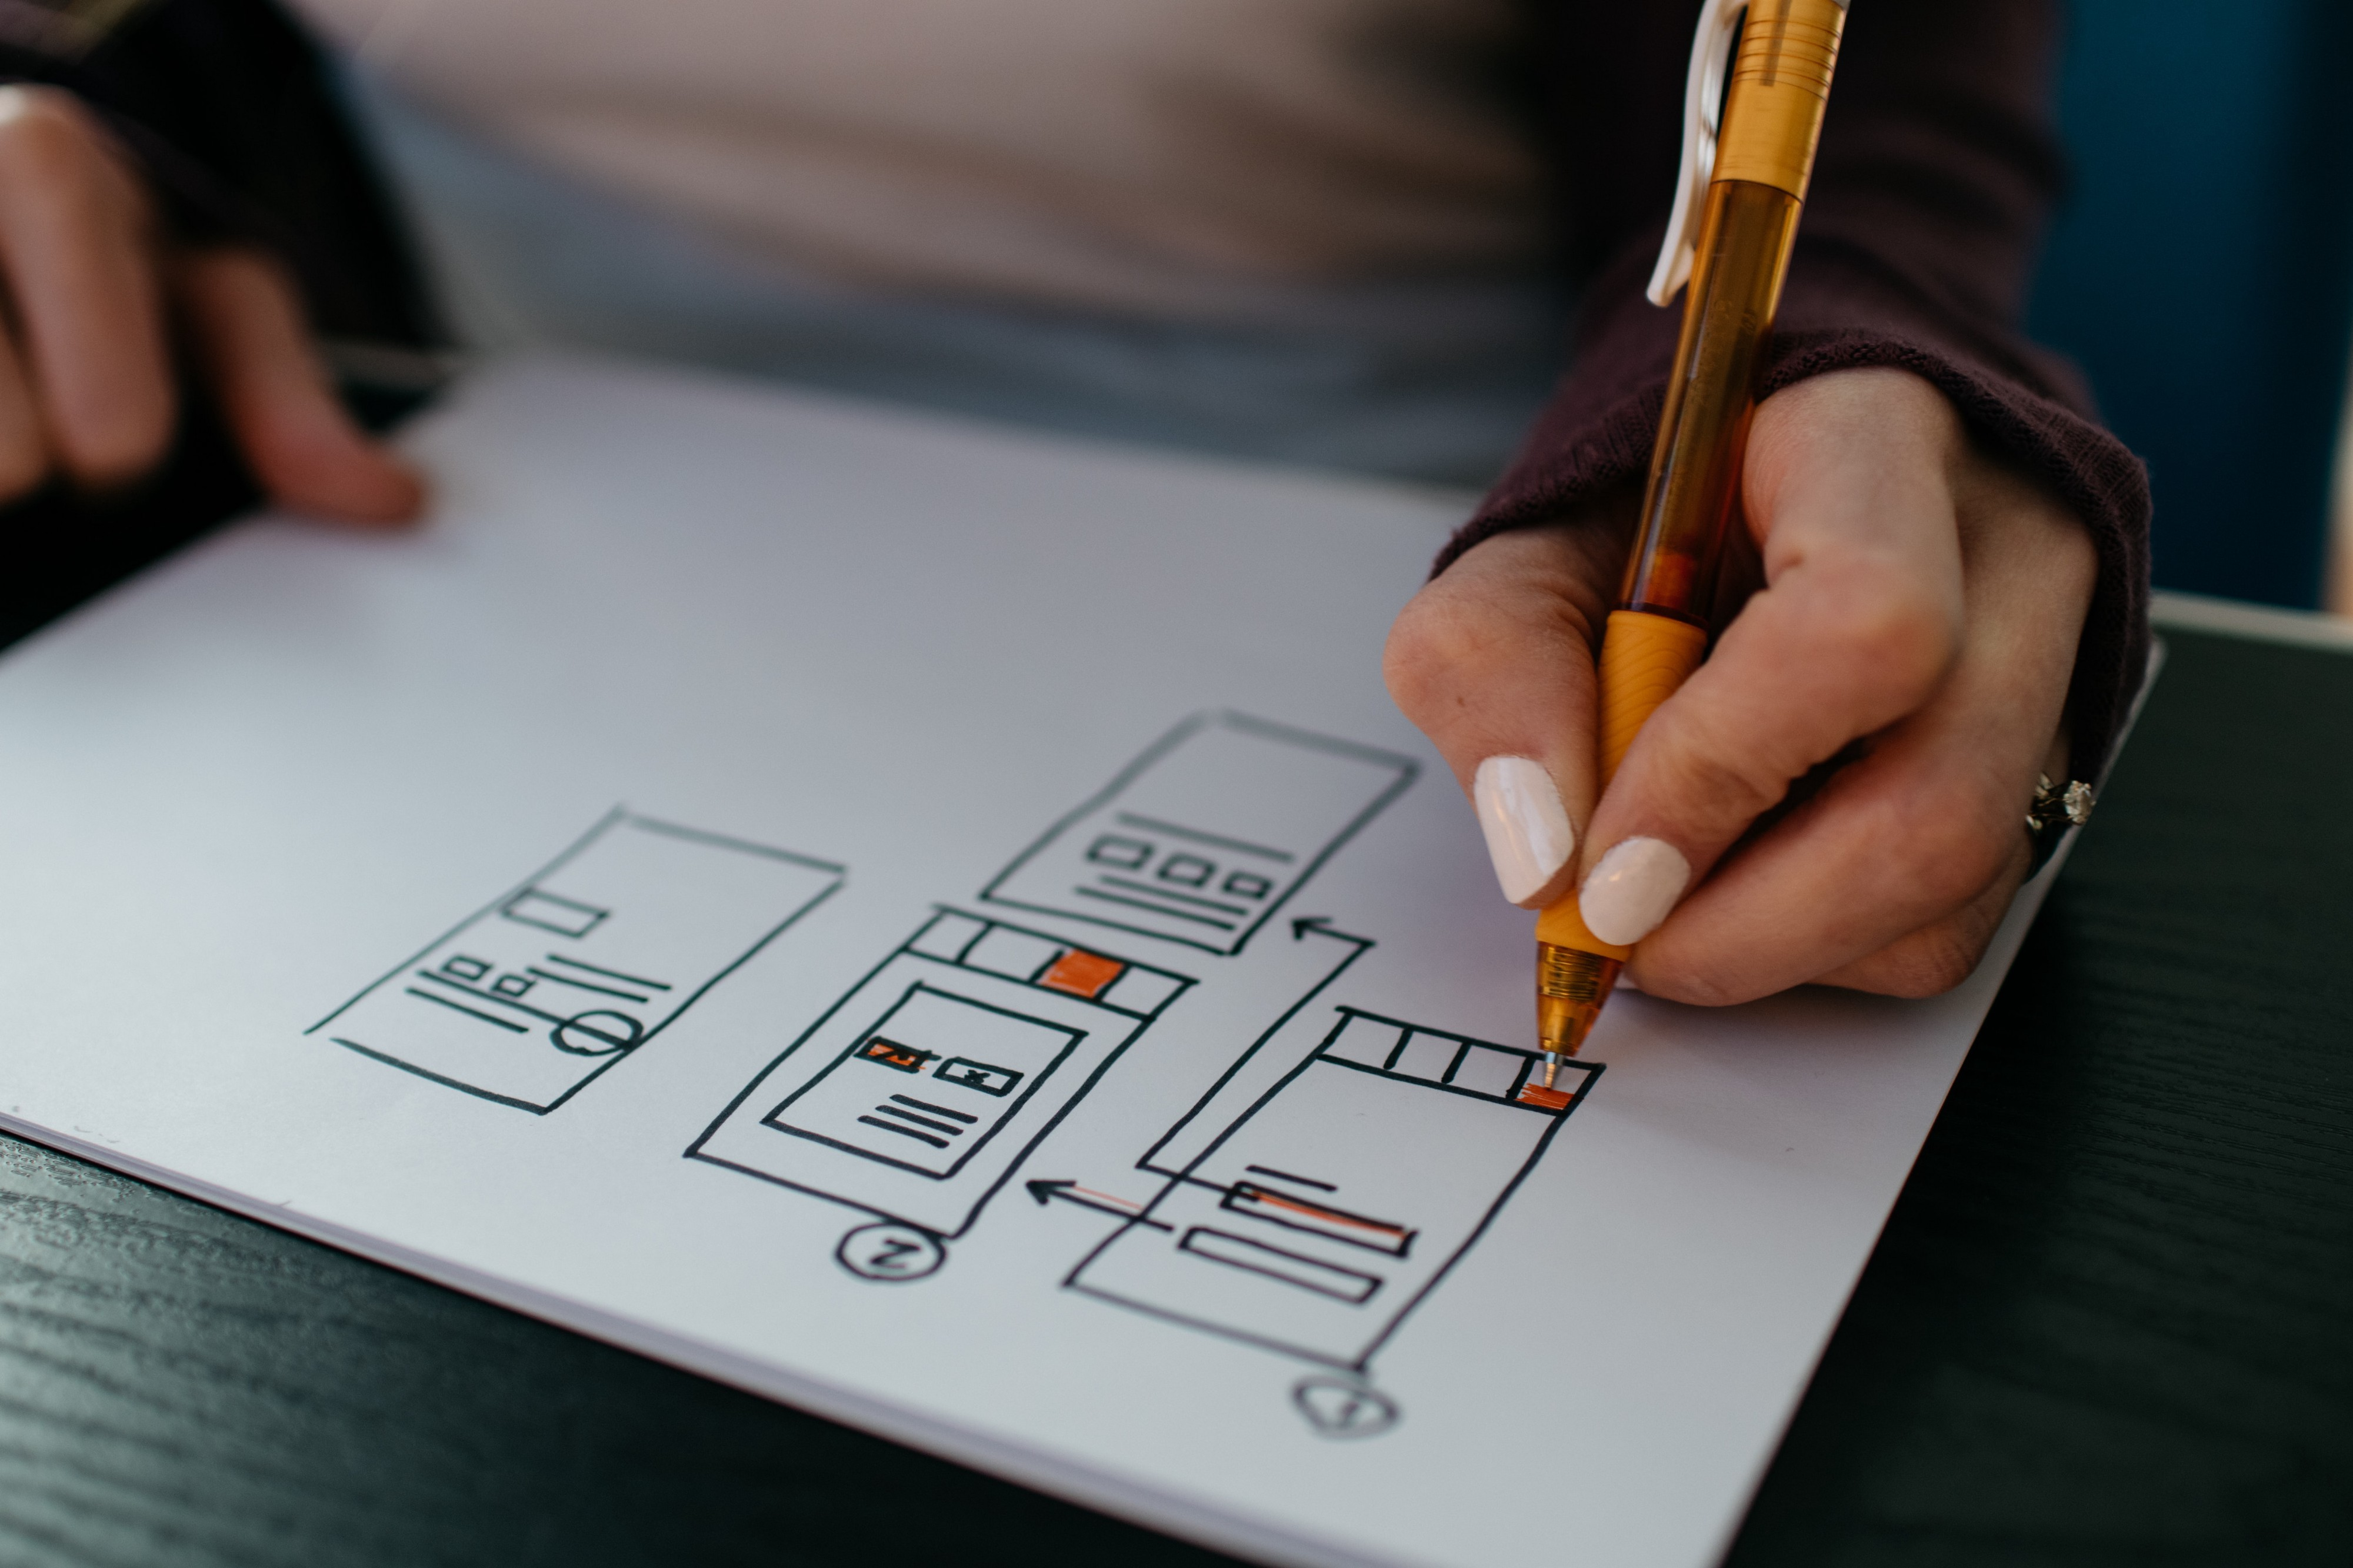 The picture shows a designer drawing a website wireframe